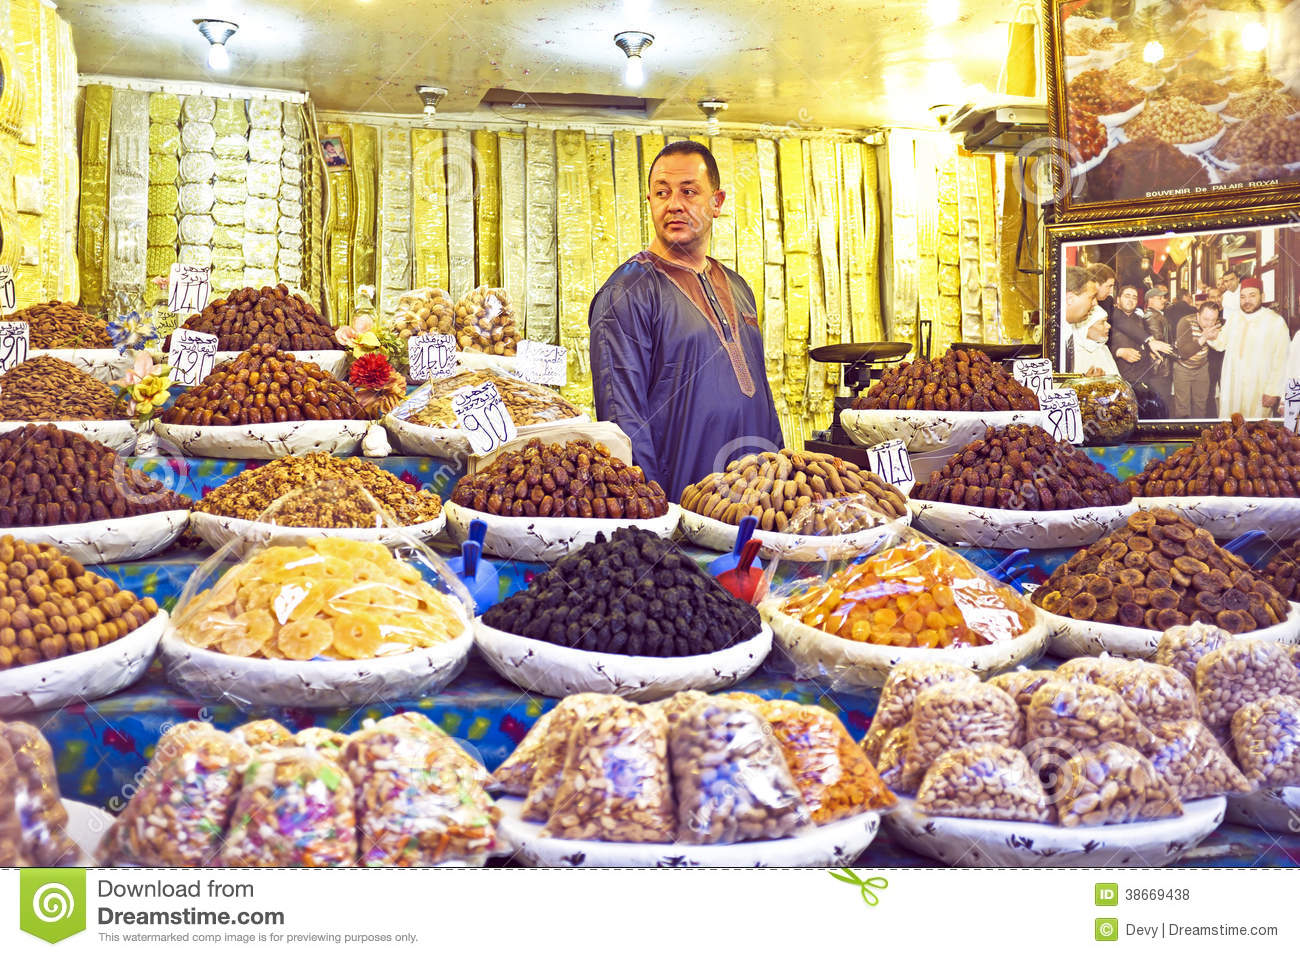 Fes marocco october 17 2013 merchant is selling dried fruits and